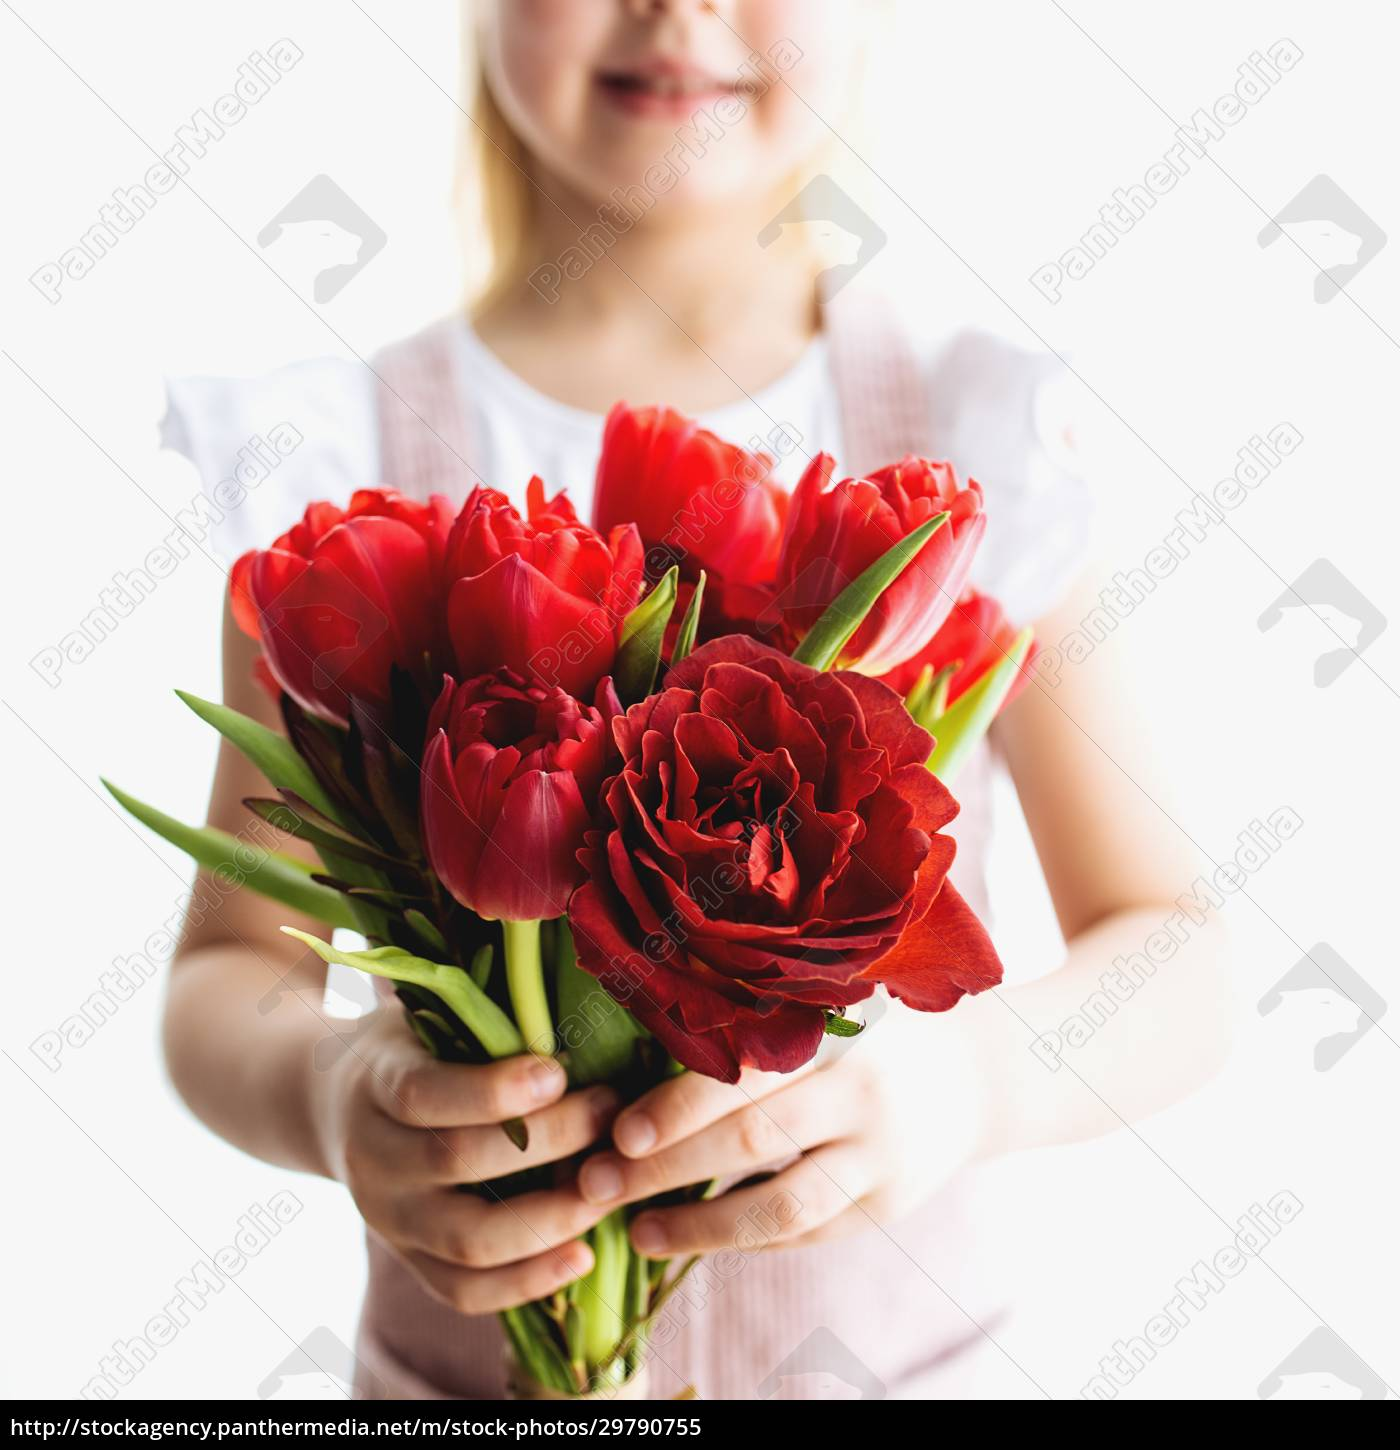 smiling, small, girl, holding, bouquet, of - 29790755